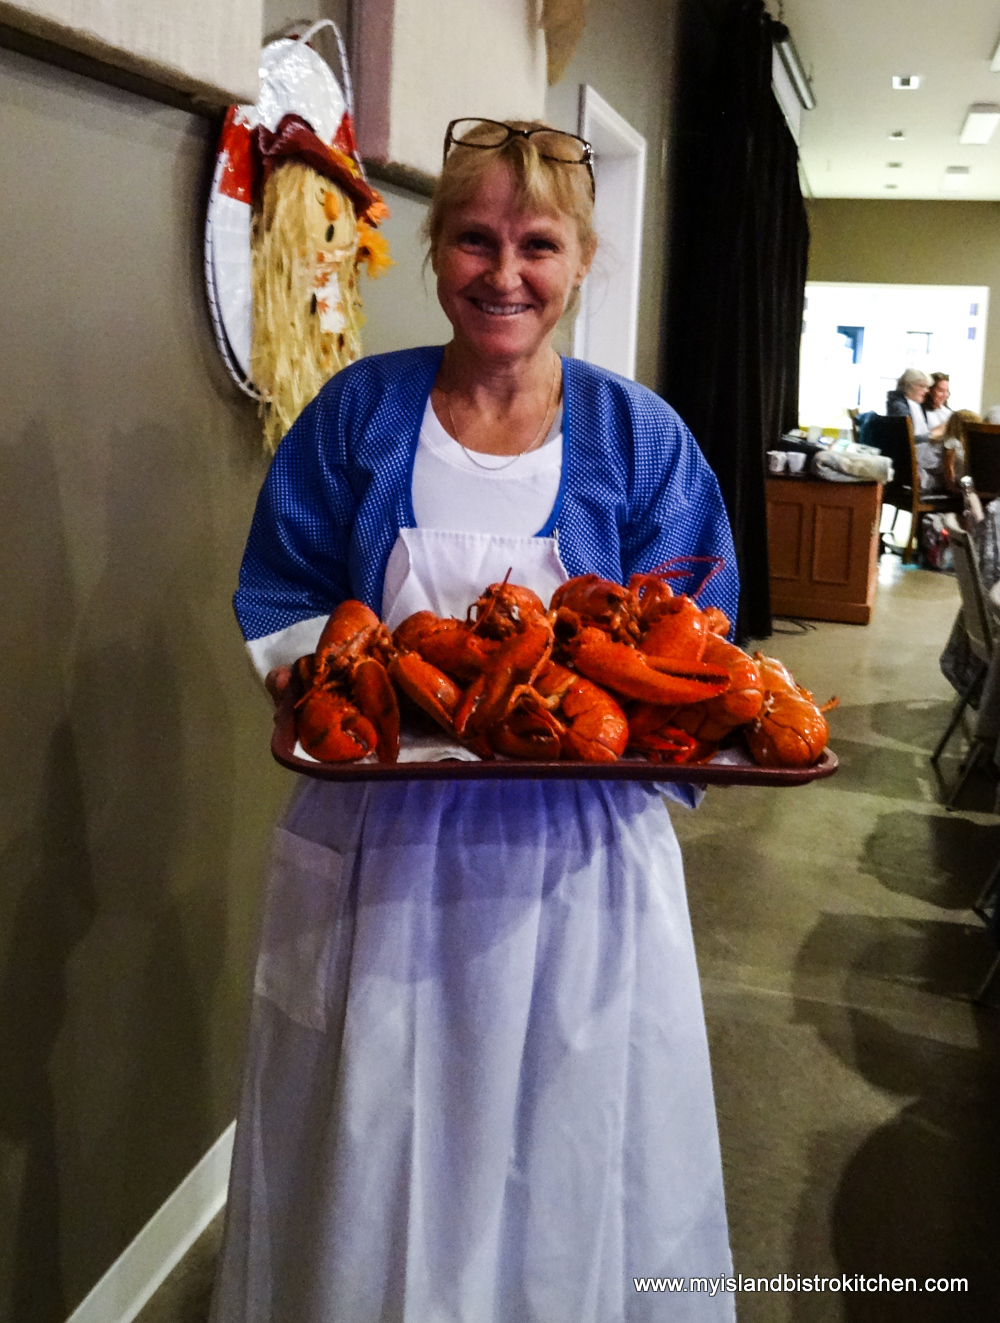 Server Arrives at Table with Platter of PEI Lobster (at the Le Festin acadien avec homard event, PEI Fall Flavours Festival 2017)